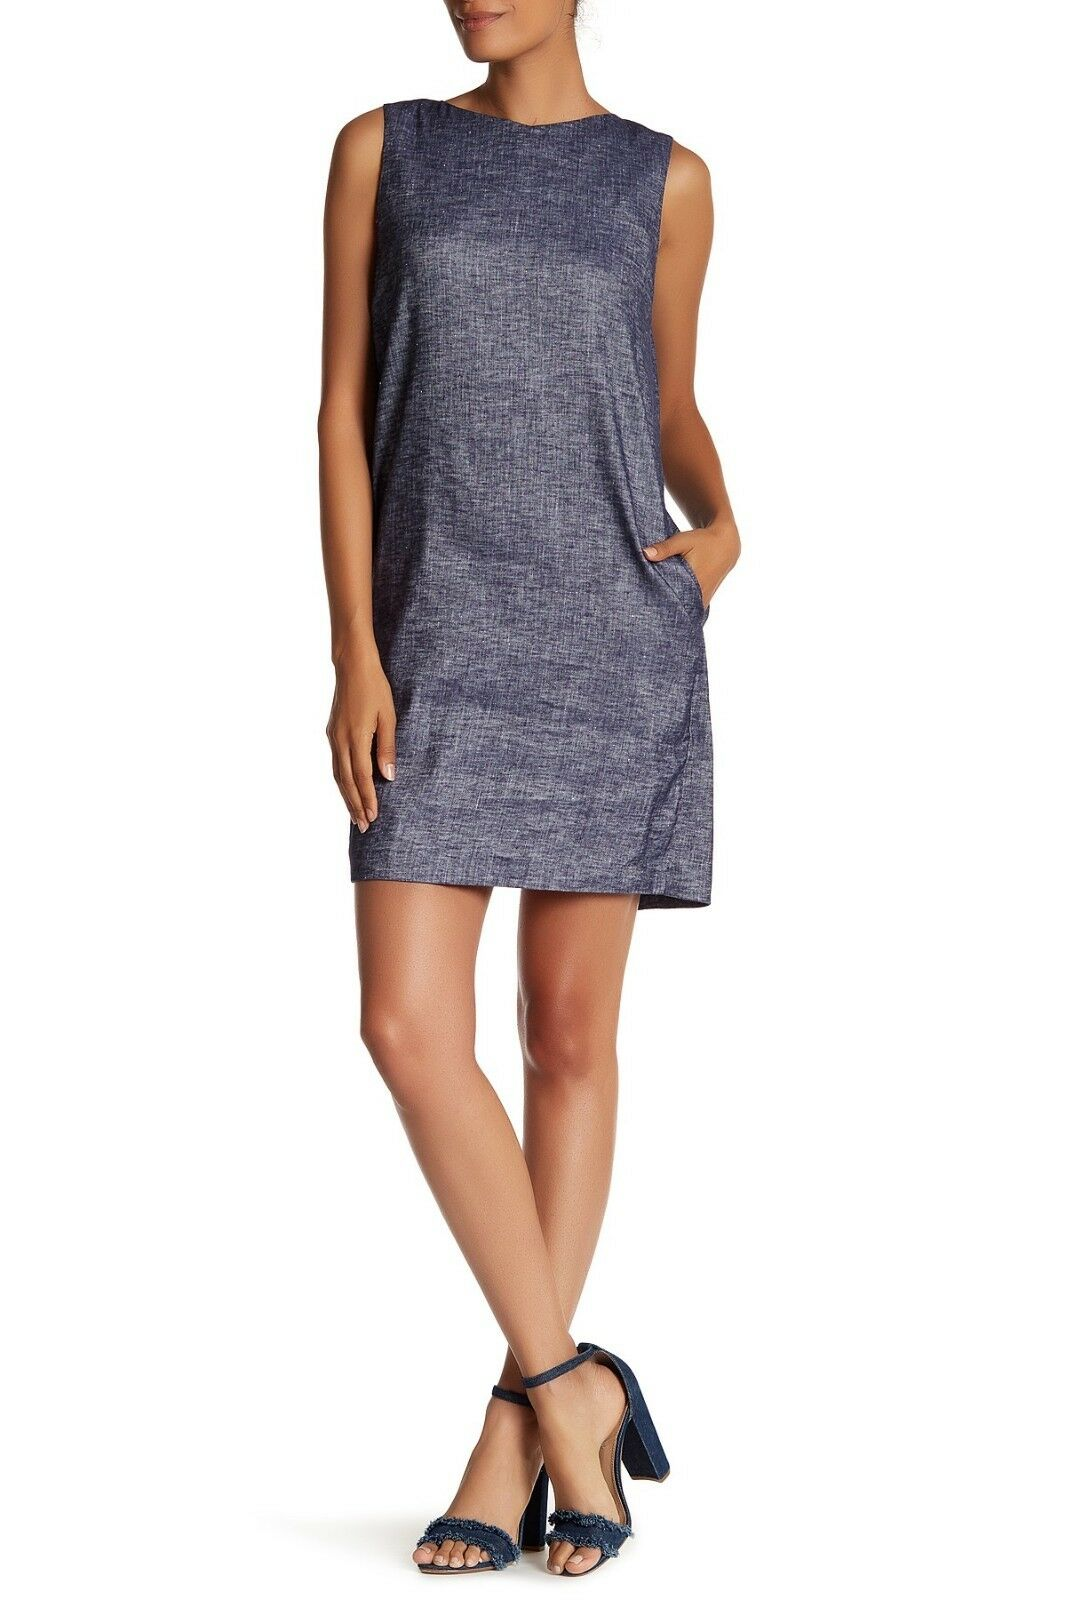 NWT Theory Narlica Sleeveless Linen Blend Shift Dress Deep Denim Größe 4